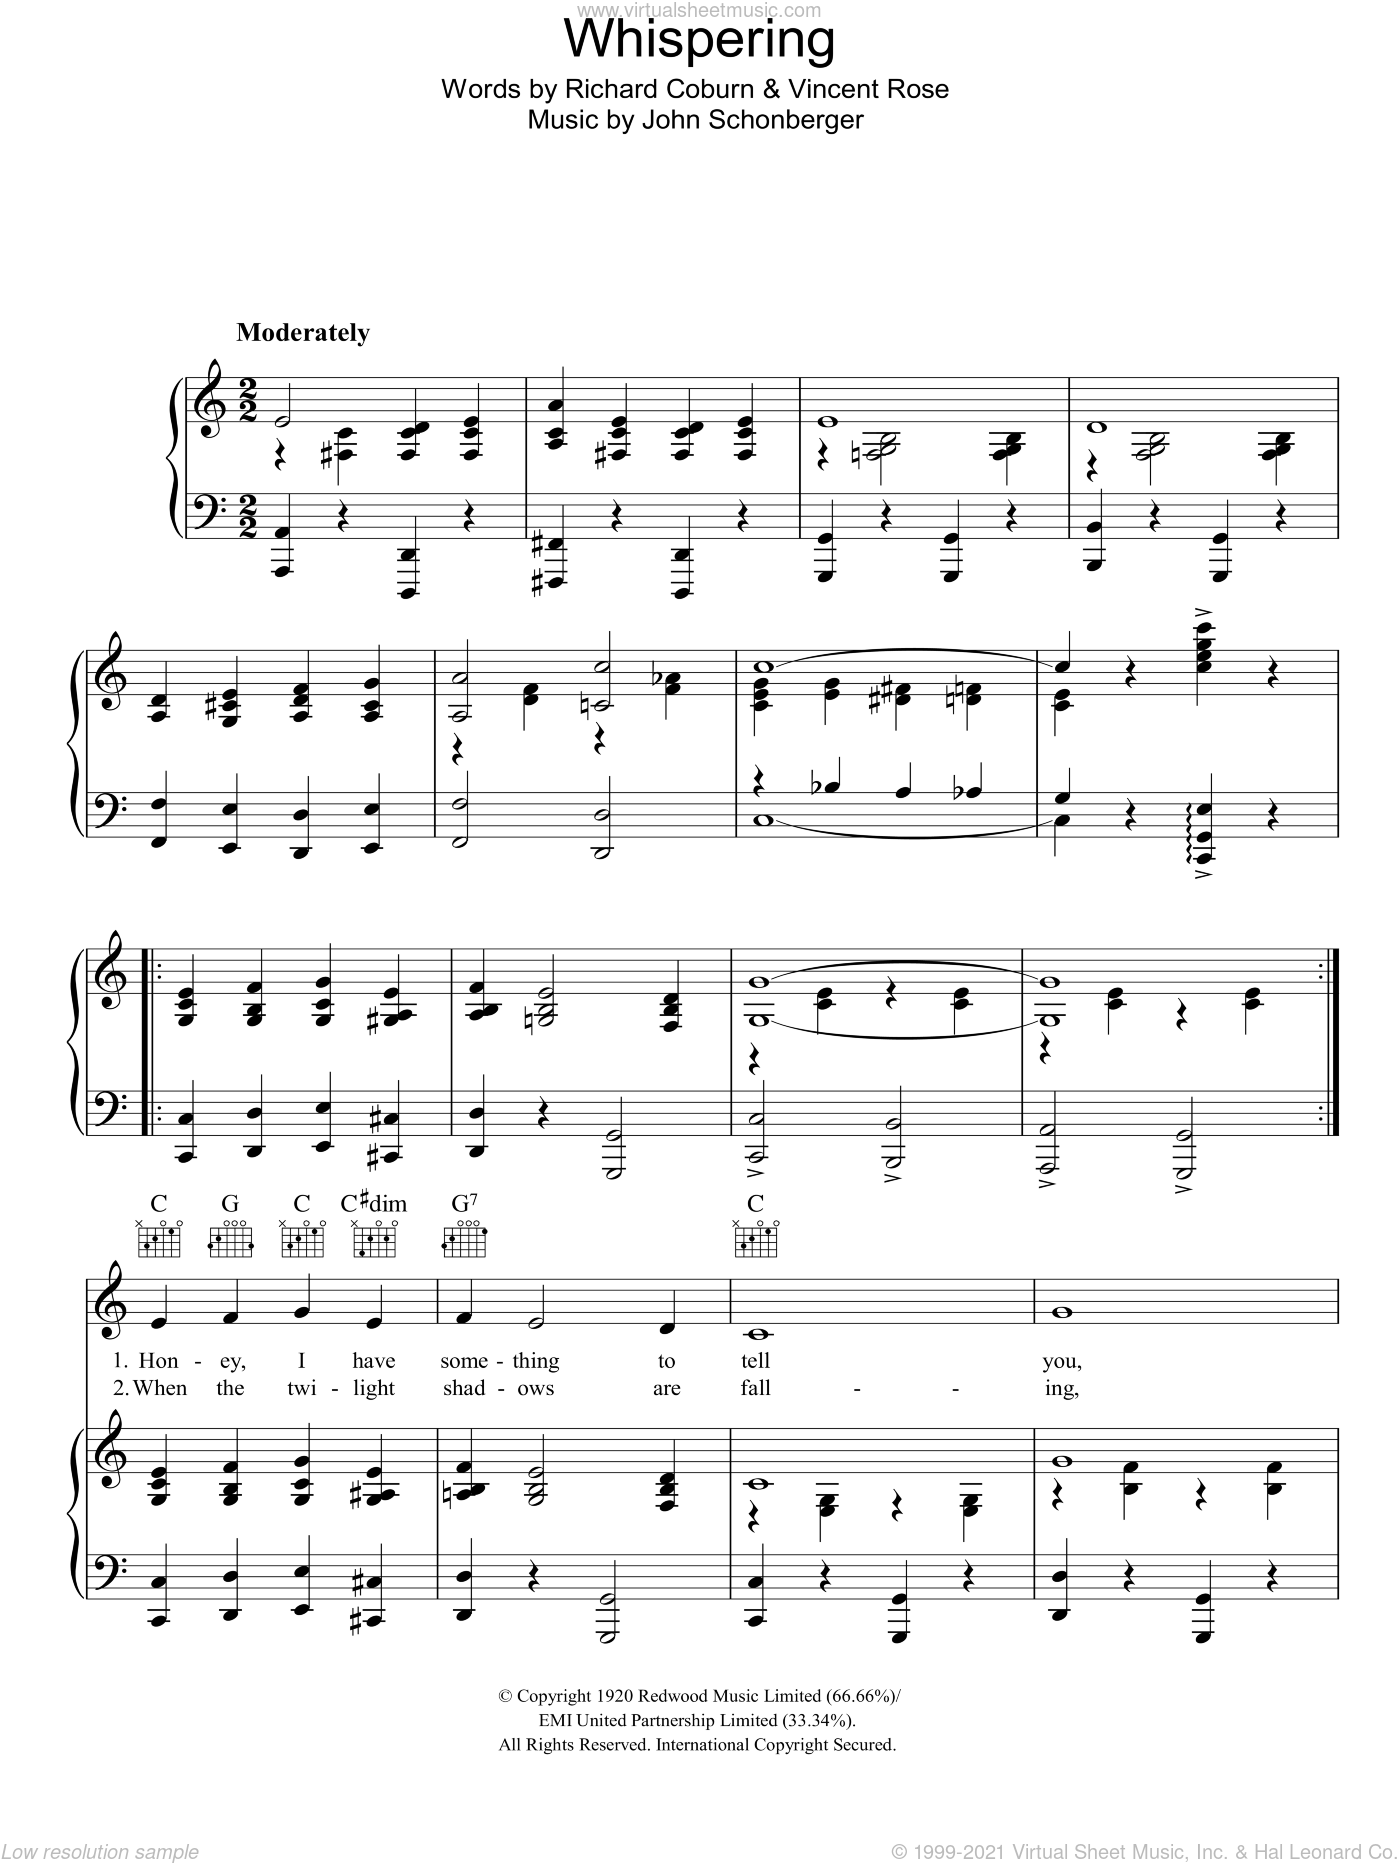 Whispering sheet music for voice, piano or guitar by John Schonberger